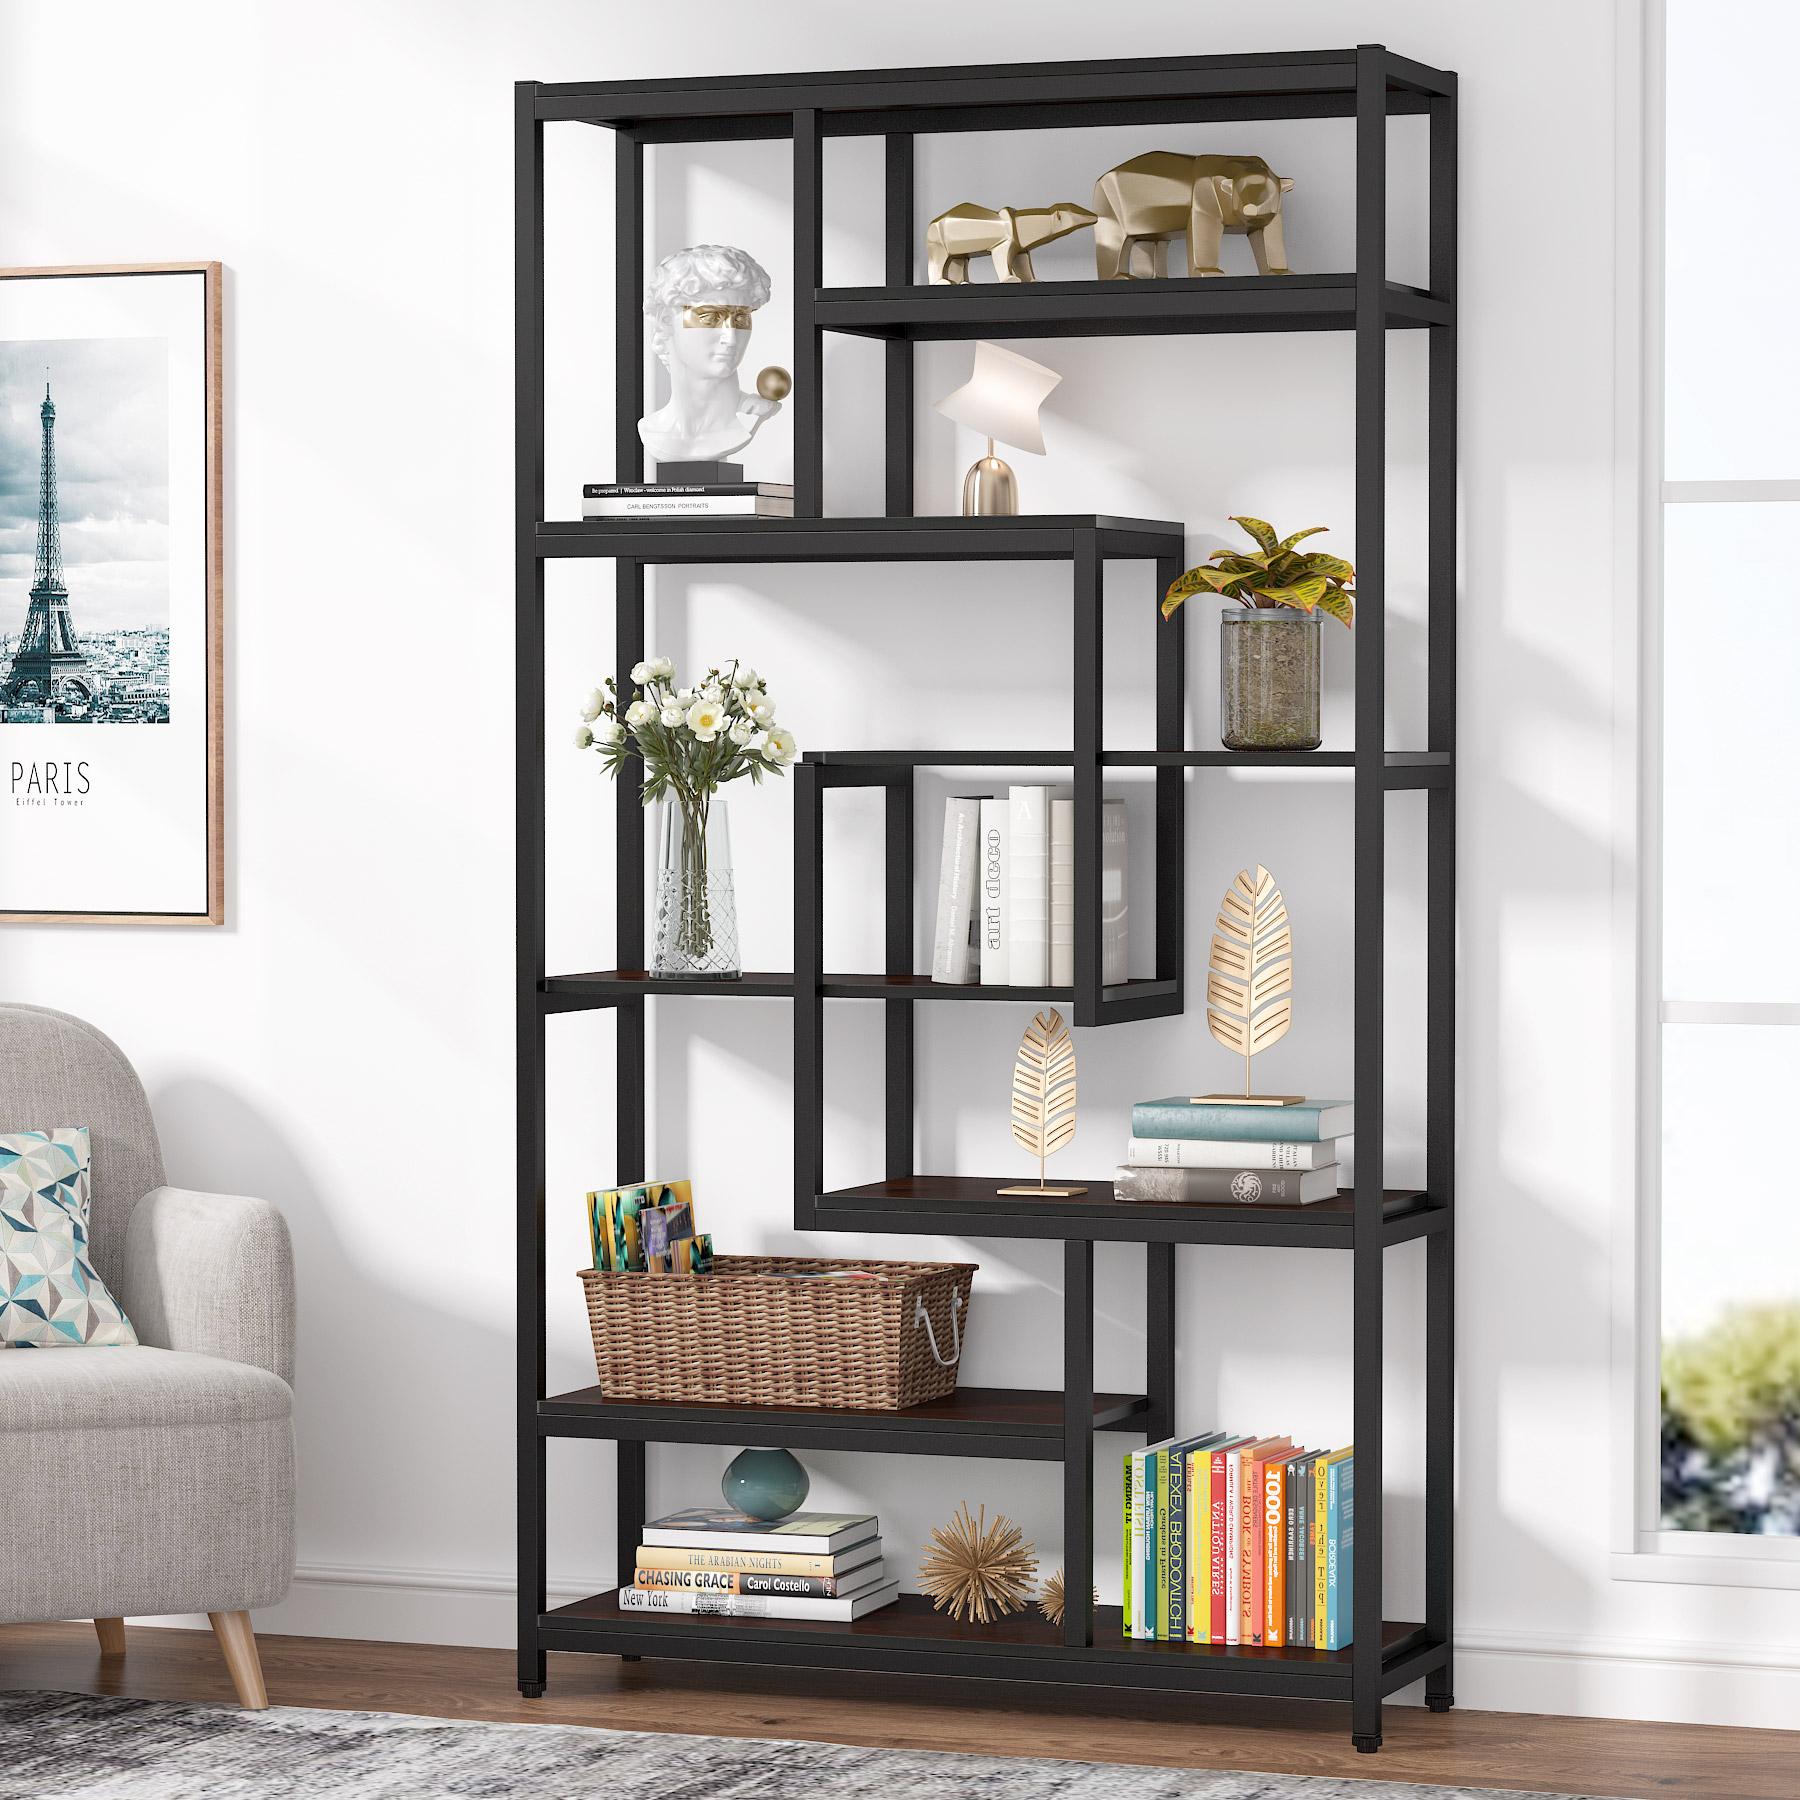 Tribesigns 8 Tier Open Bookcase Modern Etagere Bookshelf Display Shelf Storage Shelving Unit Freestanding Multifunctional Decorative Rack For Home Office Walmart Com Walmart Com - Etageres Decoratives